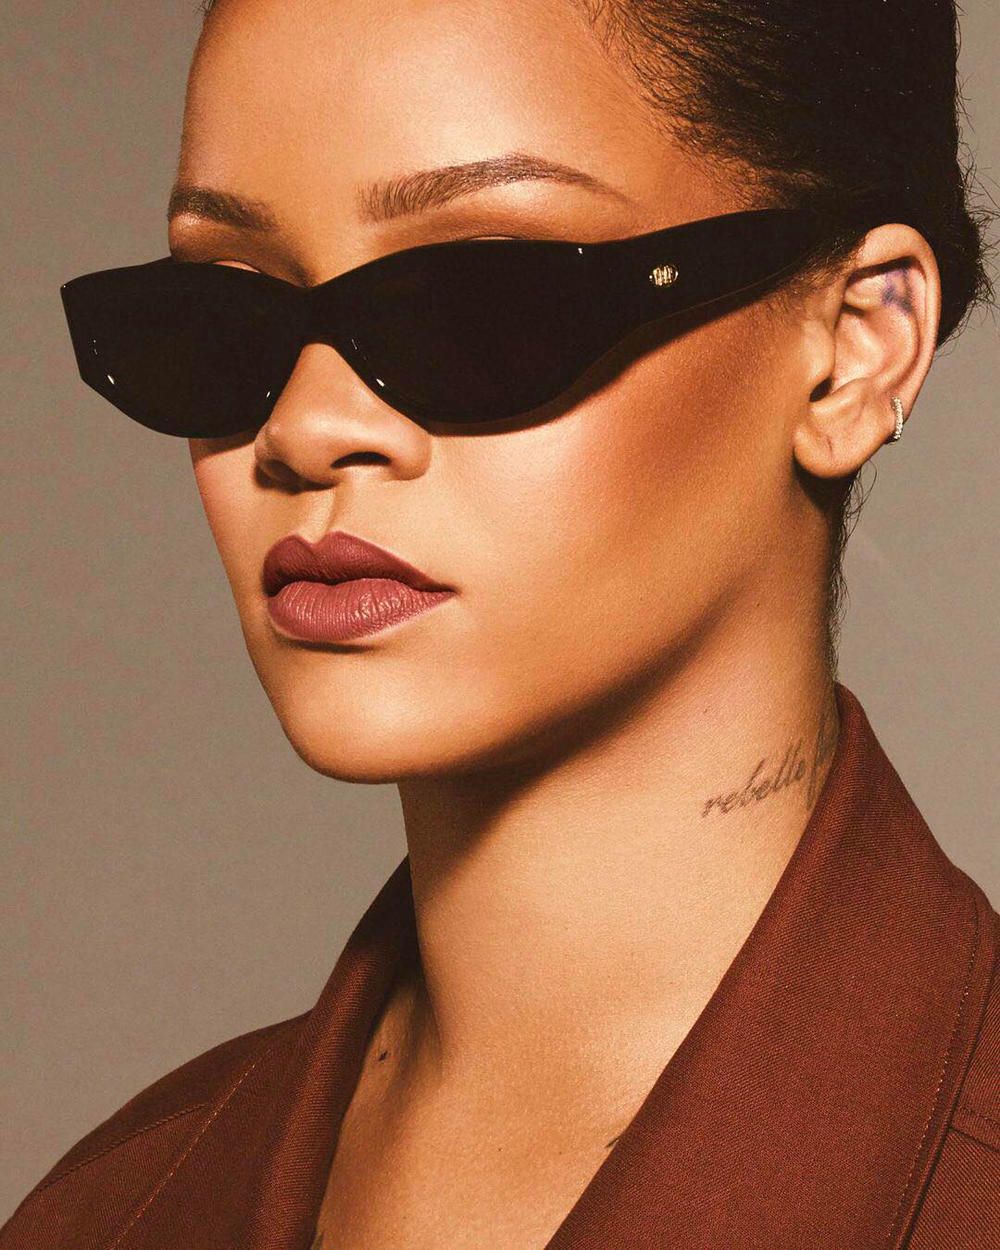 Rihanna Fenty Beauty Uncuffed Stunna Lip Paint Lipstick Crap Eyewear The Funk Punk Sunglasses Black